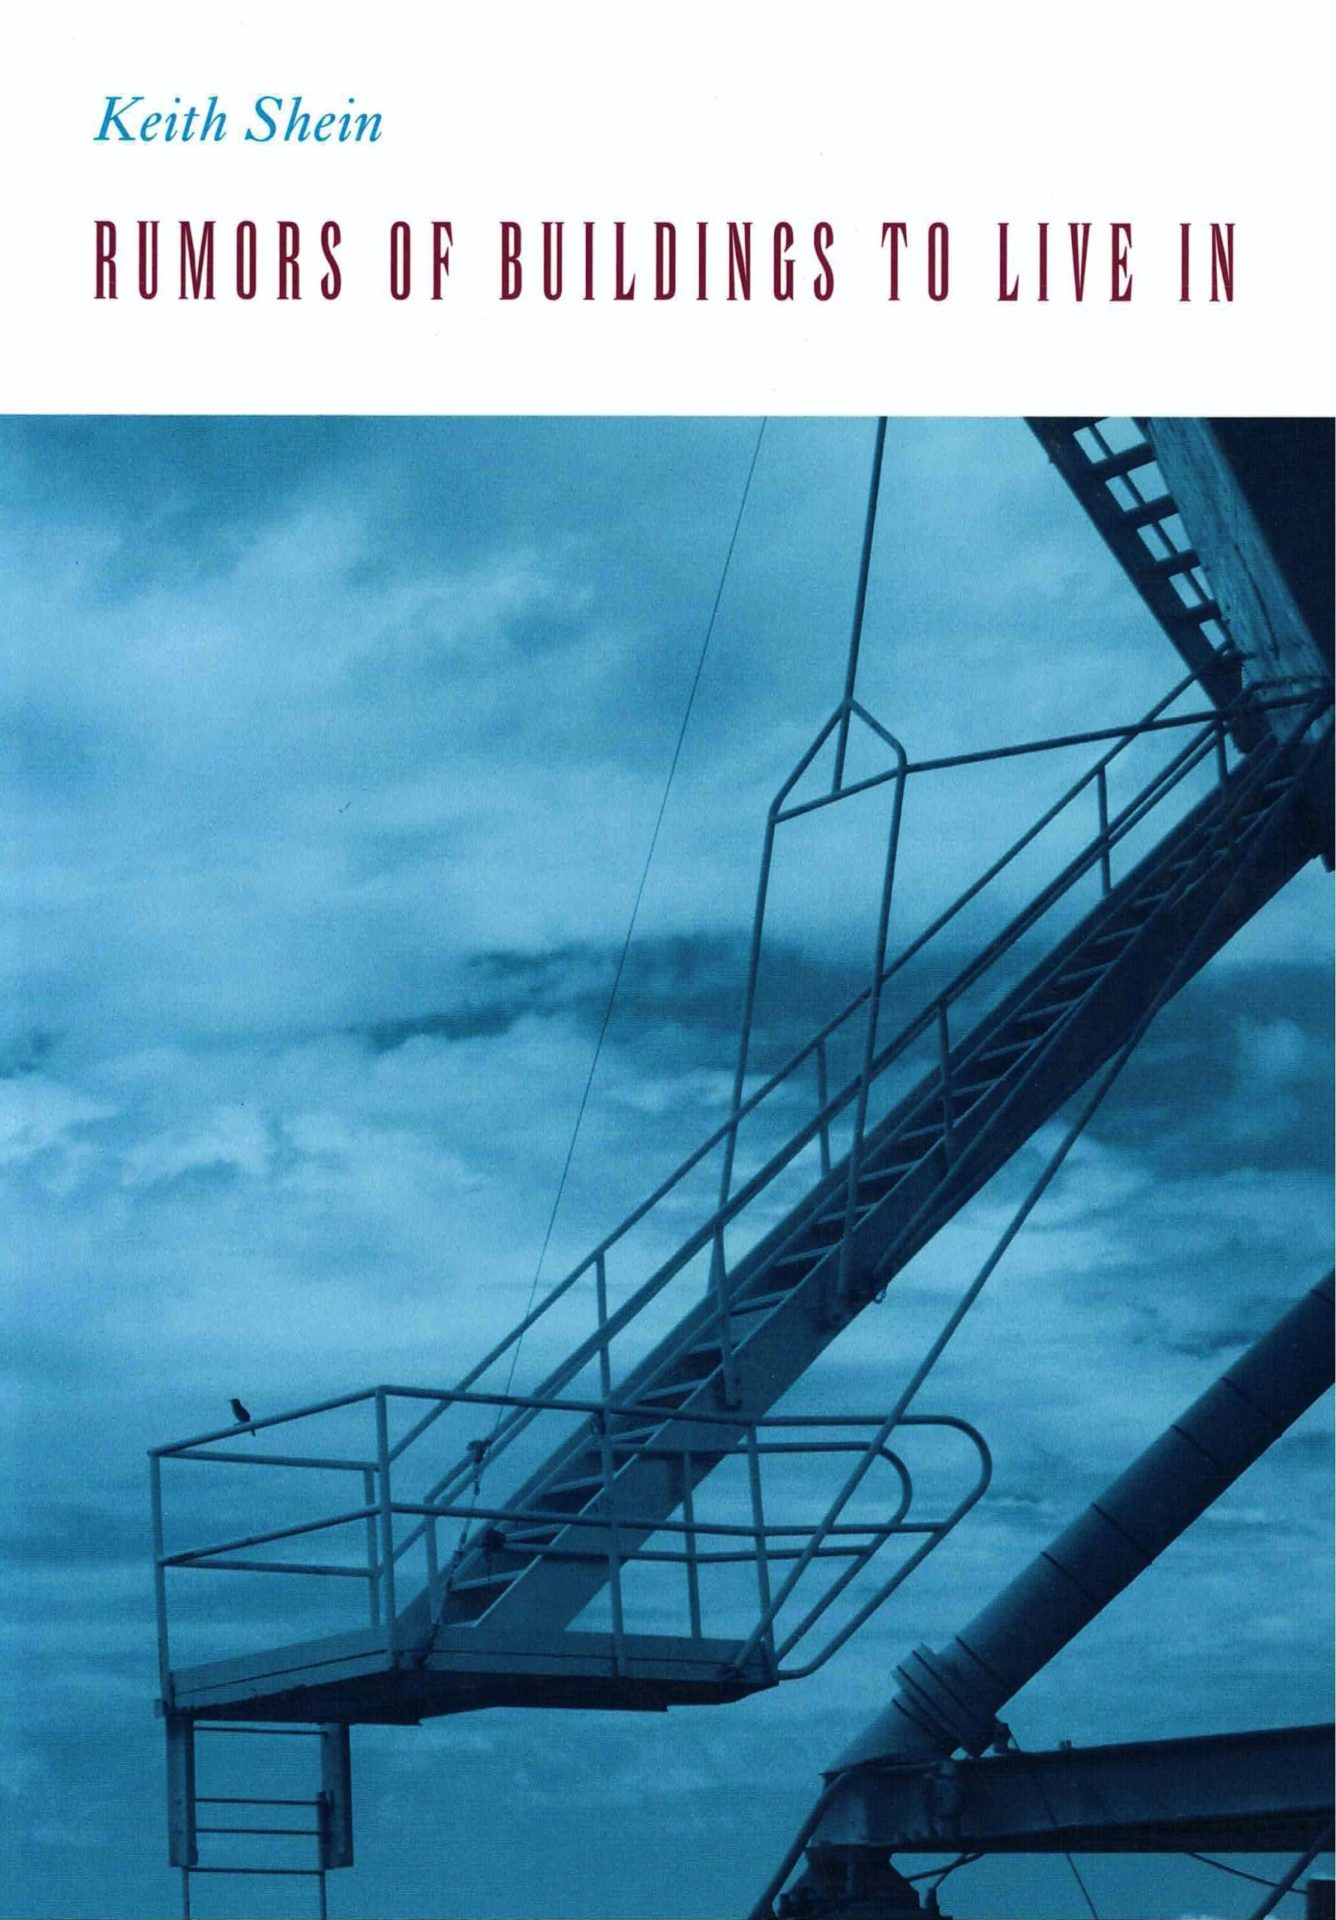 cover of Rumors of Buildings to Live In by Keith Shein, metal staircase in the sky, small bird perched on the railing